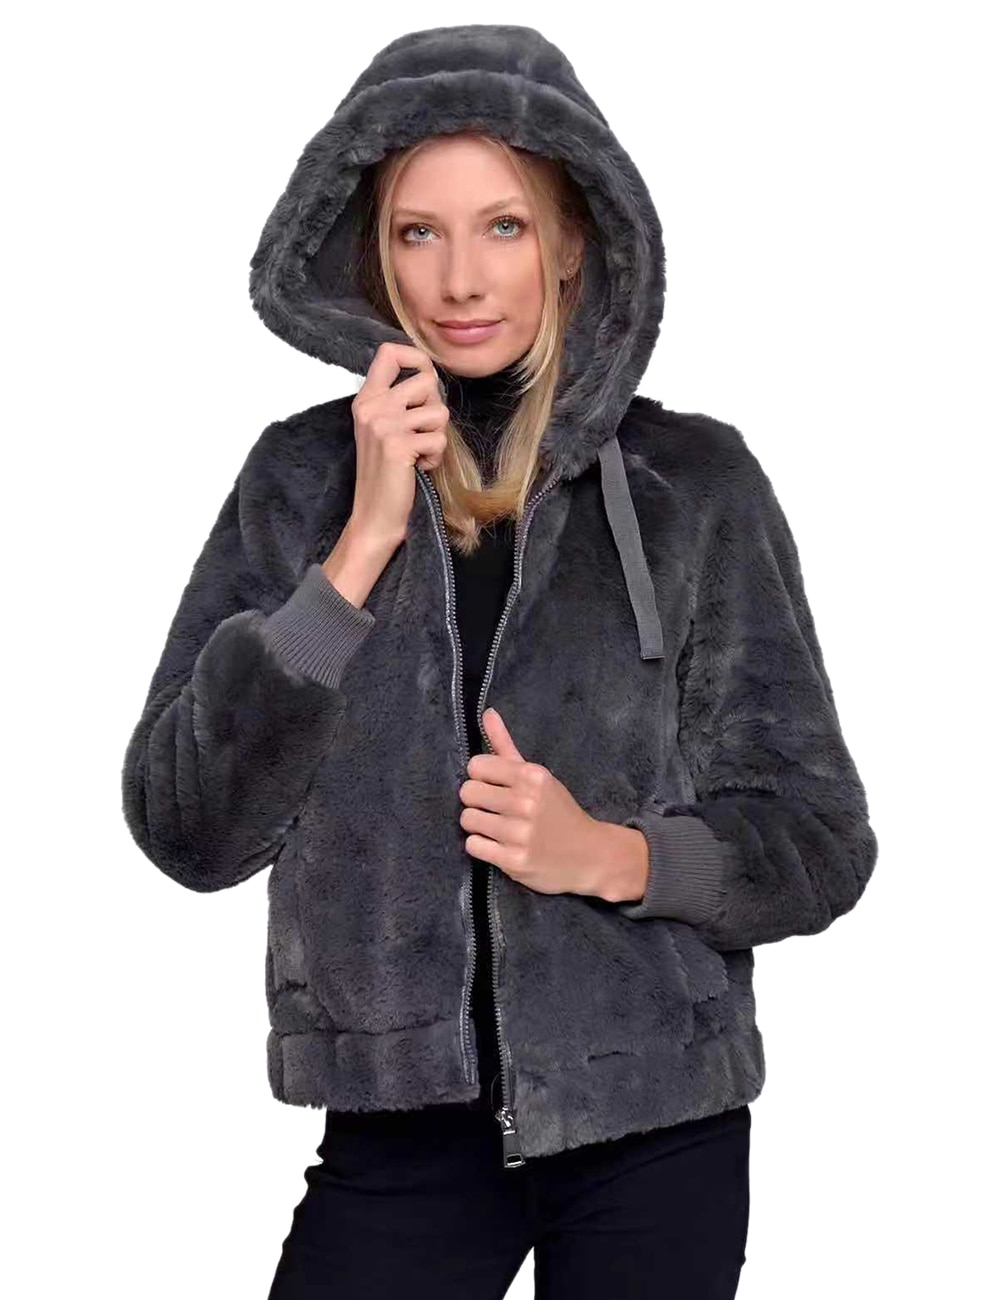 Фото - Giolshon Women Faux Fur Coat With Hood Long Sleeve Fuzzy Jacket Warm Hooded Outerwear For Spring Fall And Winter fuzzy hooded jacket